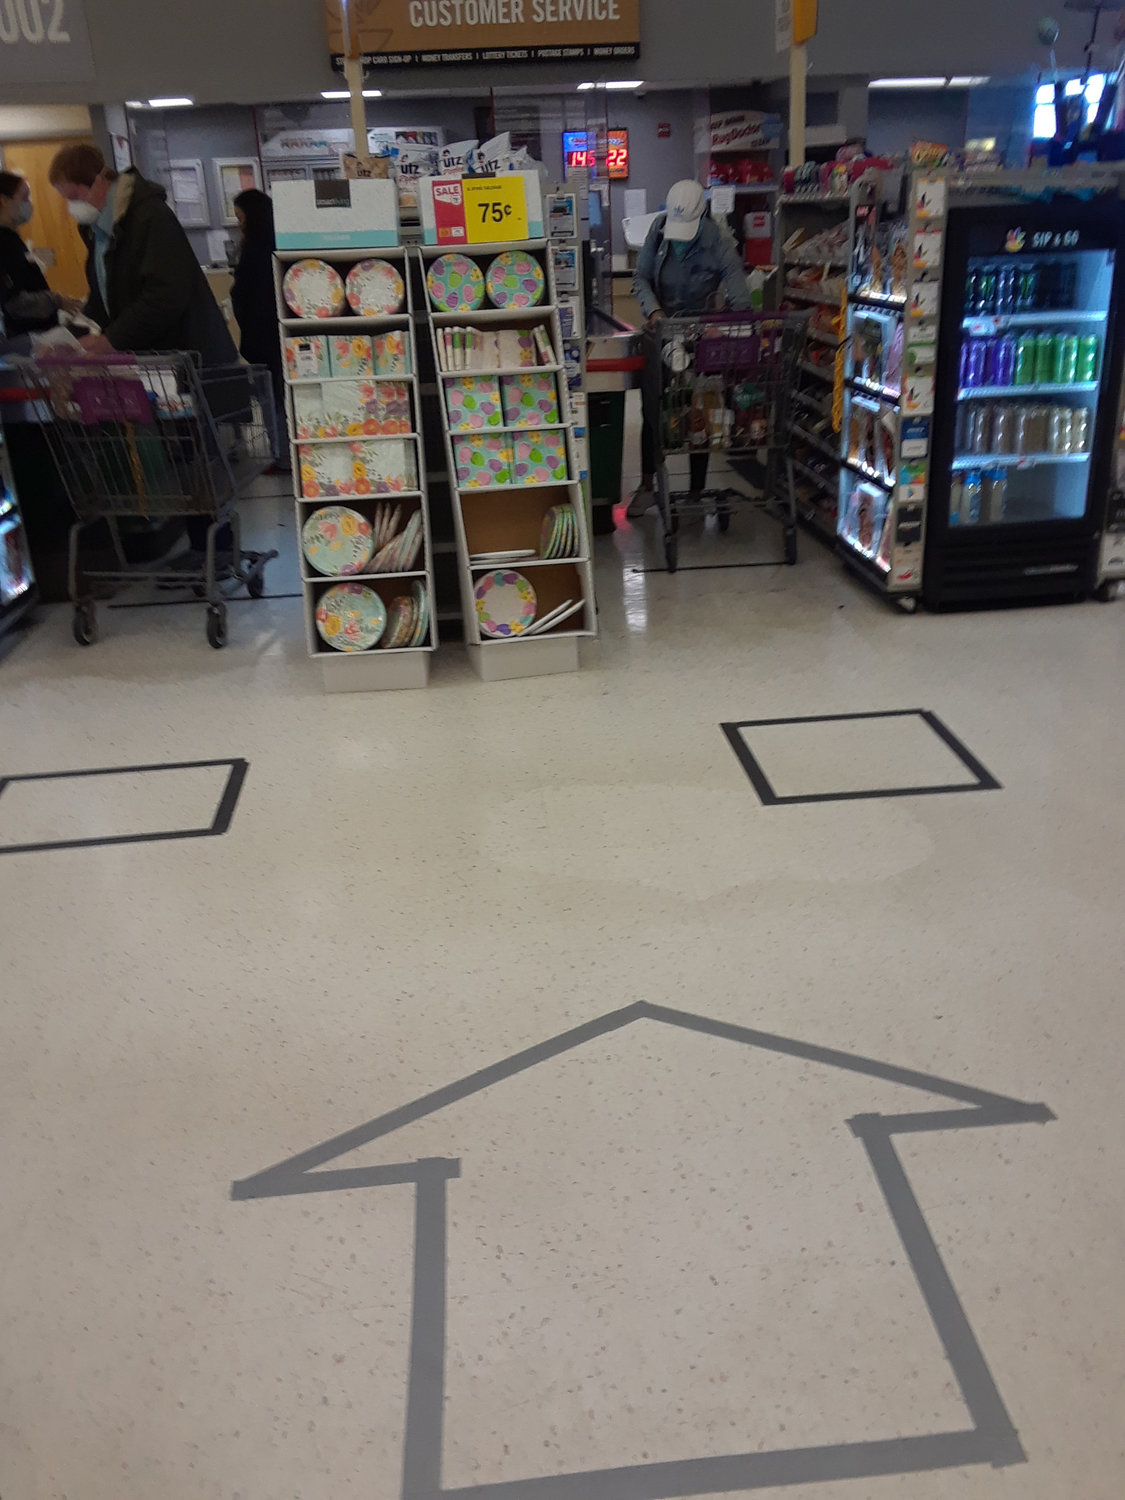 Some stores have begun using one-way aisles to help maintain social distancing.